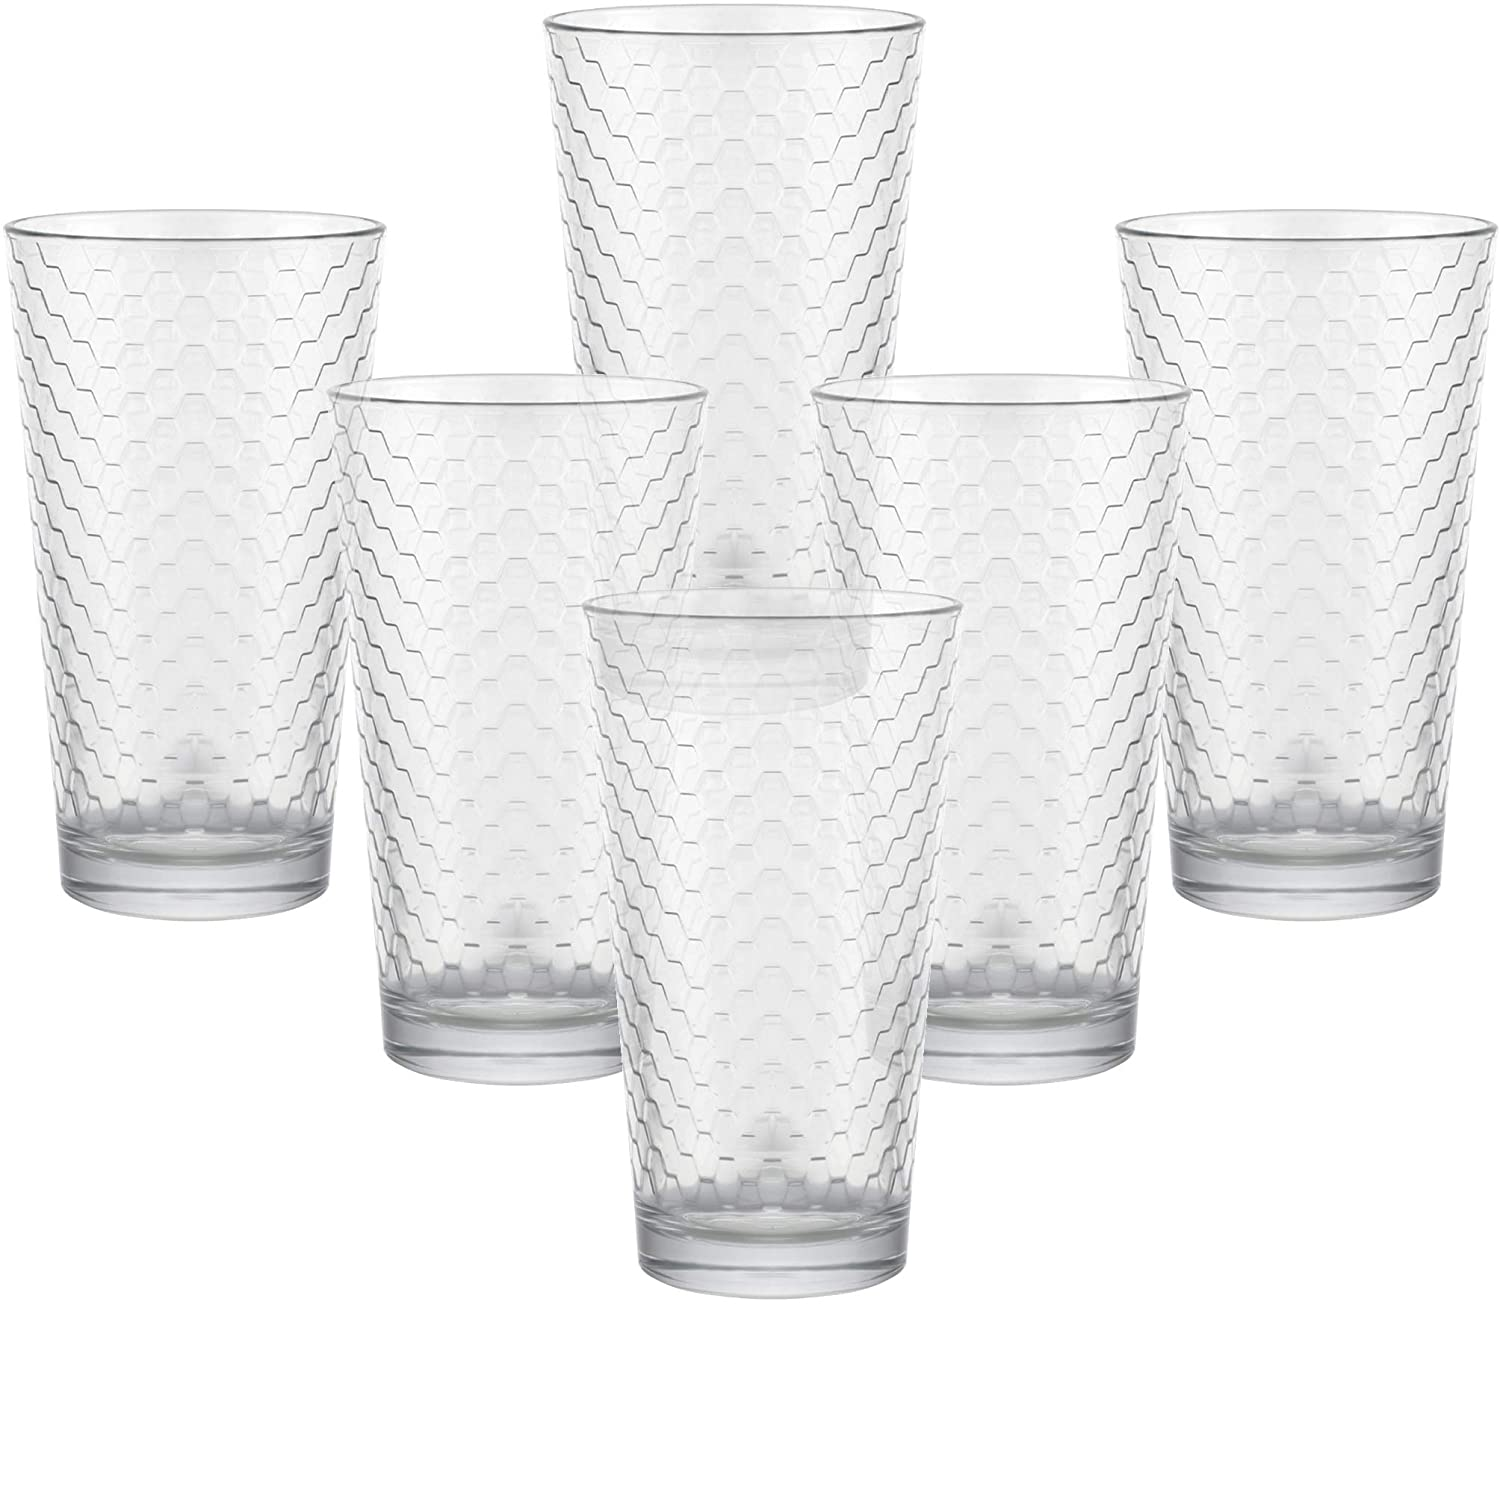 Beverage Tumbler for Water Ice Tea Bar Juice Beer 12pc Circleware 40148 Paragon Honeycomb 12 piece Glassware Set Highball Drinking Glasses /& Whiskey Cups 6-15.75 oz /& 6-12.5 oz